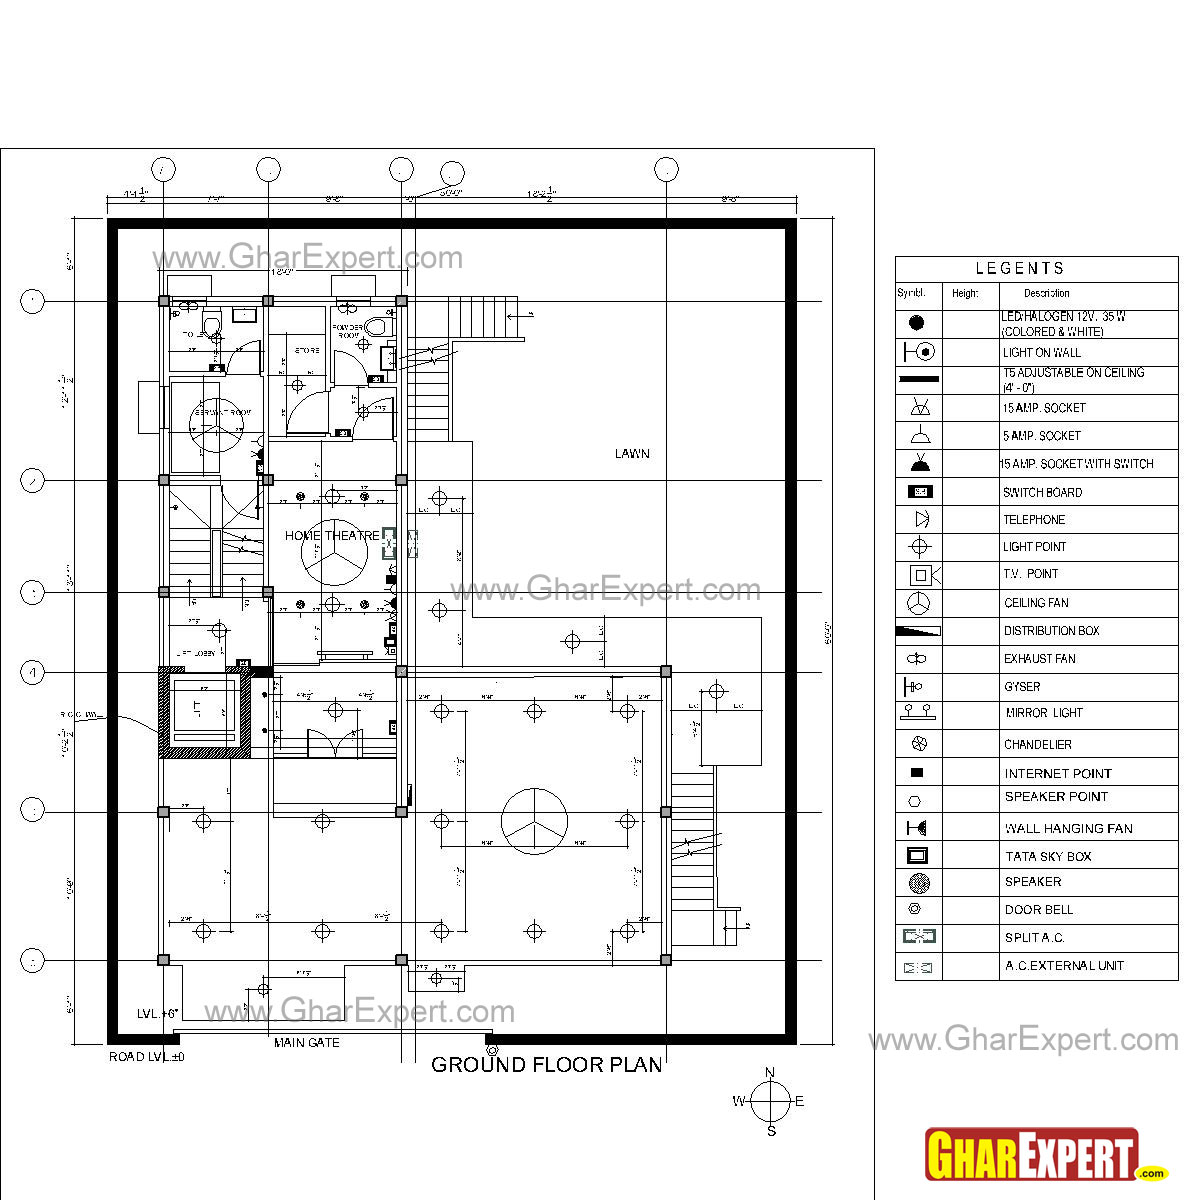 House Plan With Electrical Layout - Colakork.net